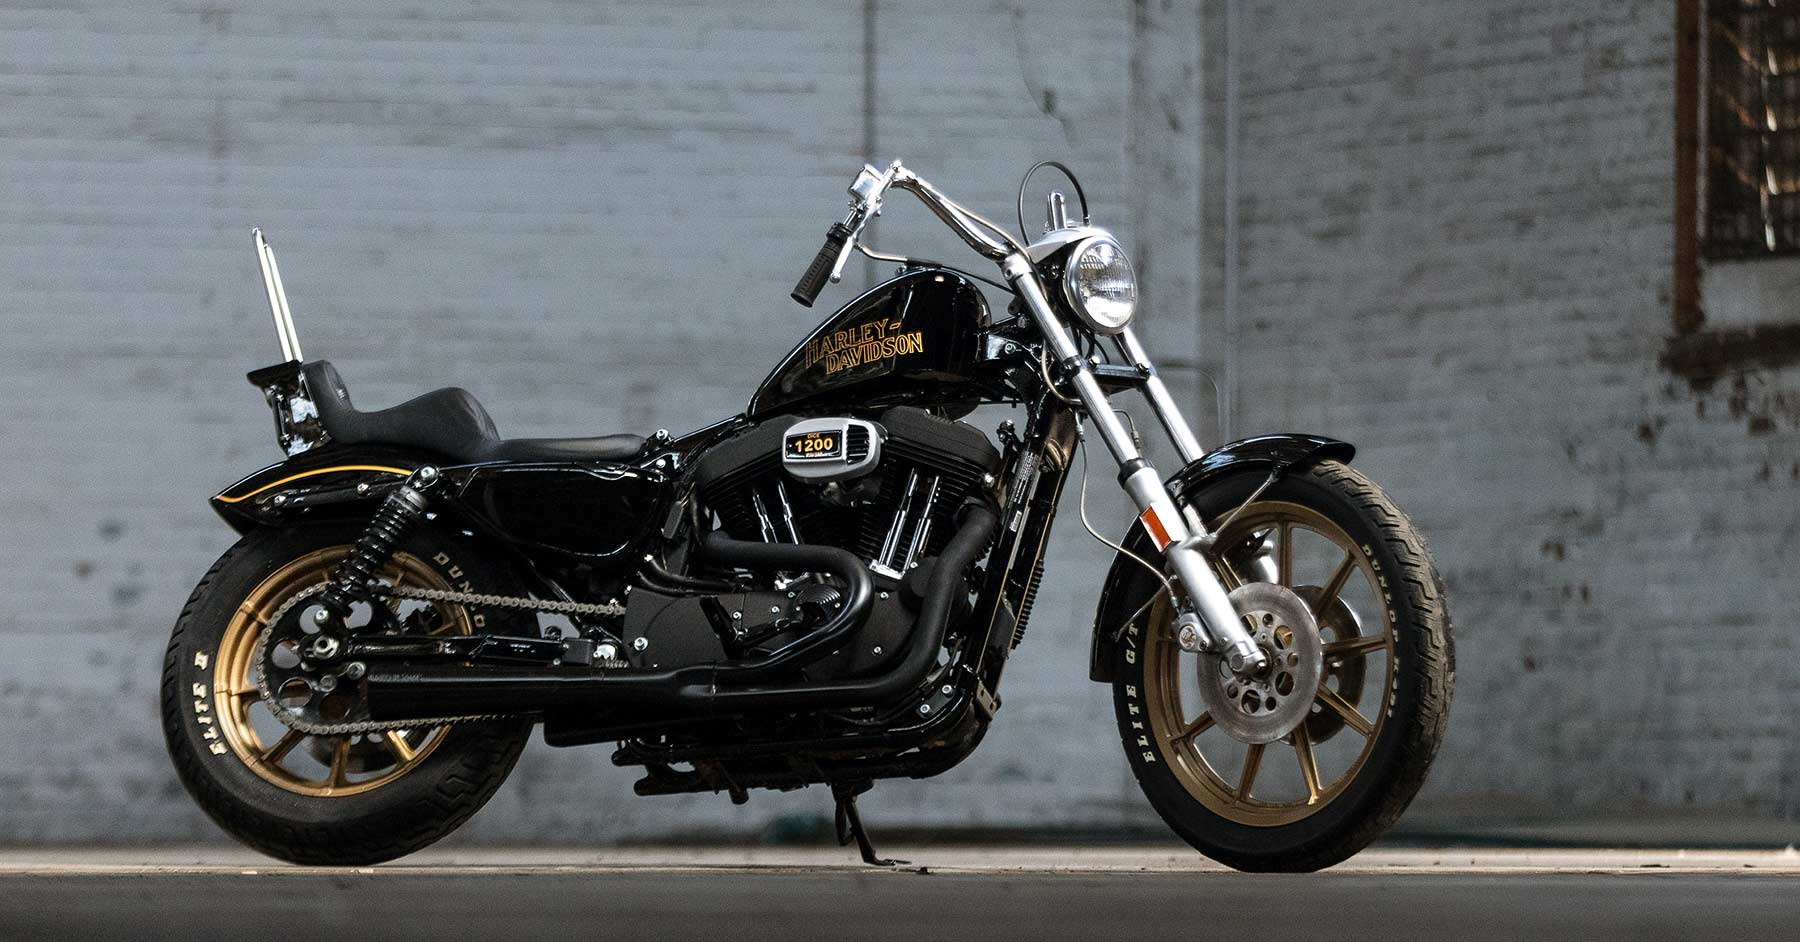 Bodacious: An 80s style Iron 1200 from Prism Supply Co.